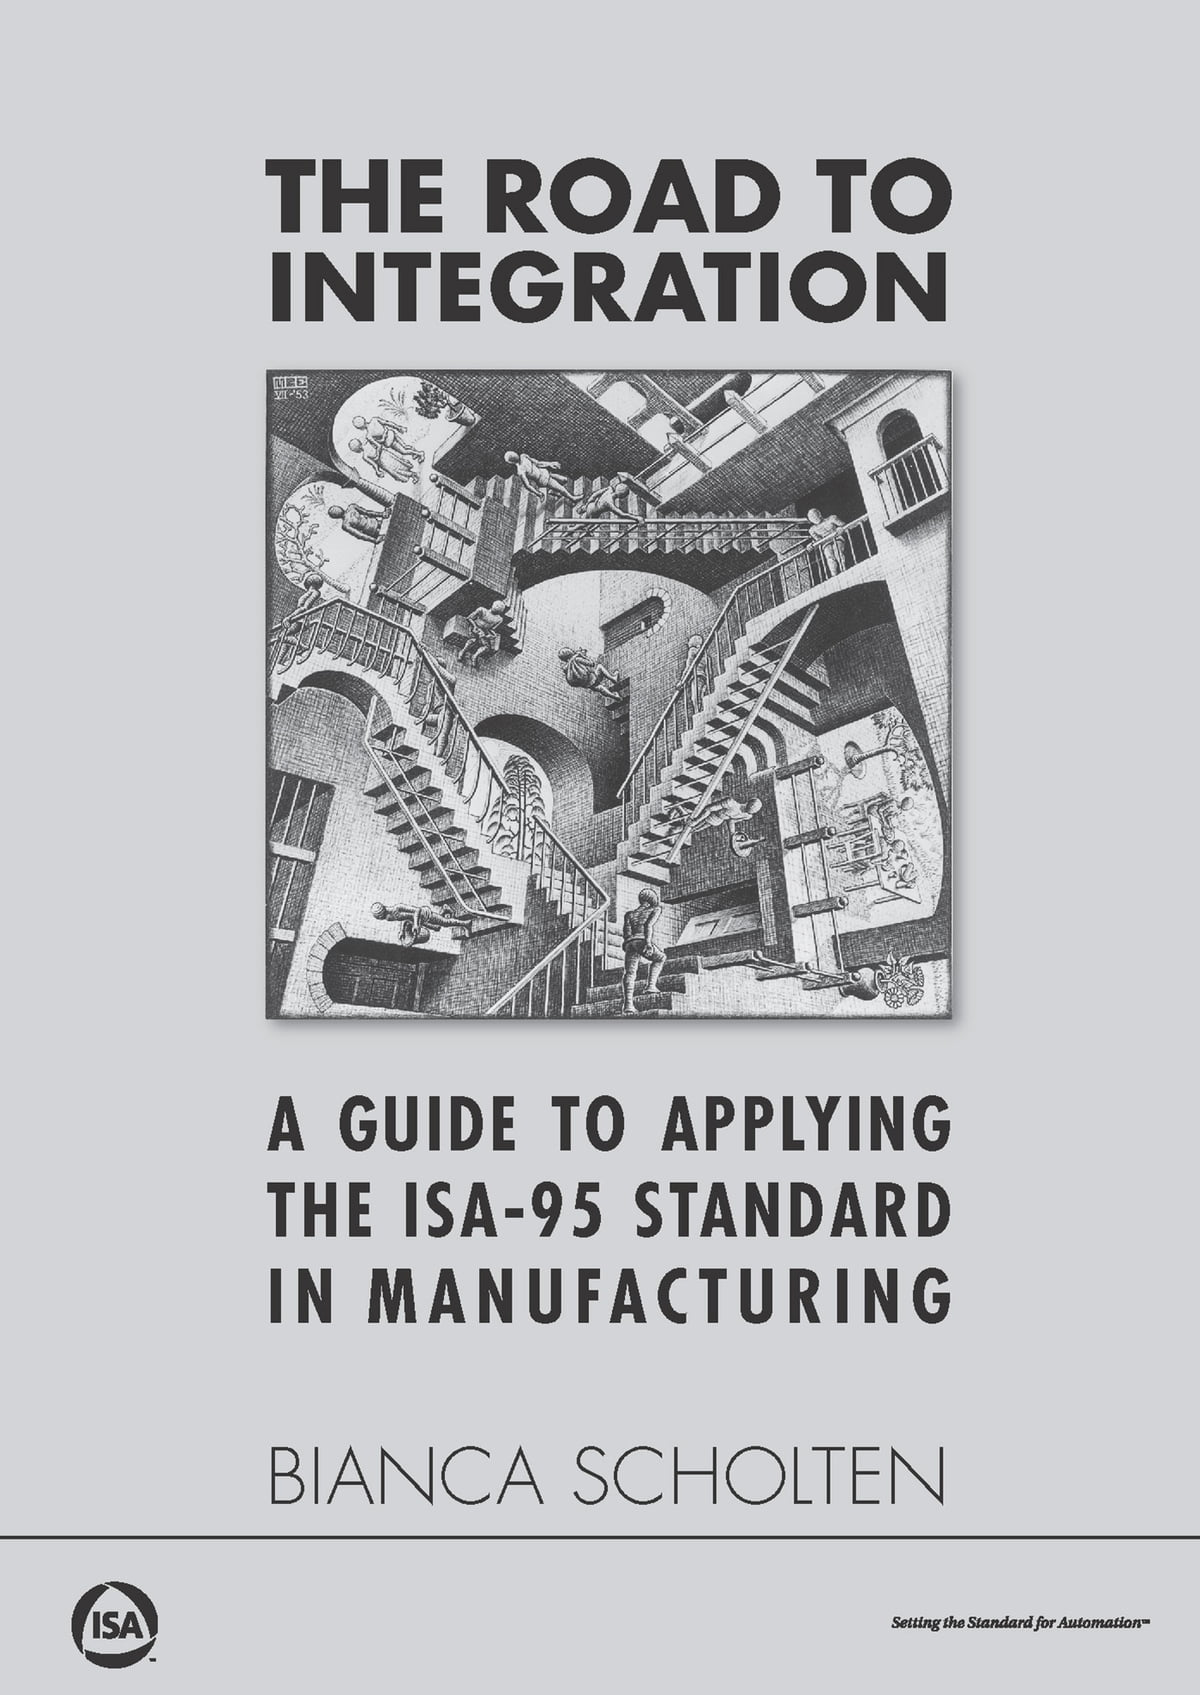 The Road to Integration: A Guide to Applying the ISA-95